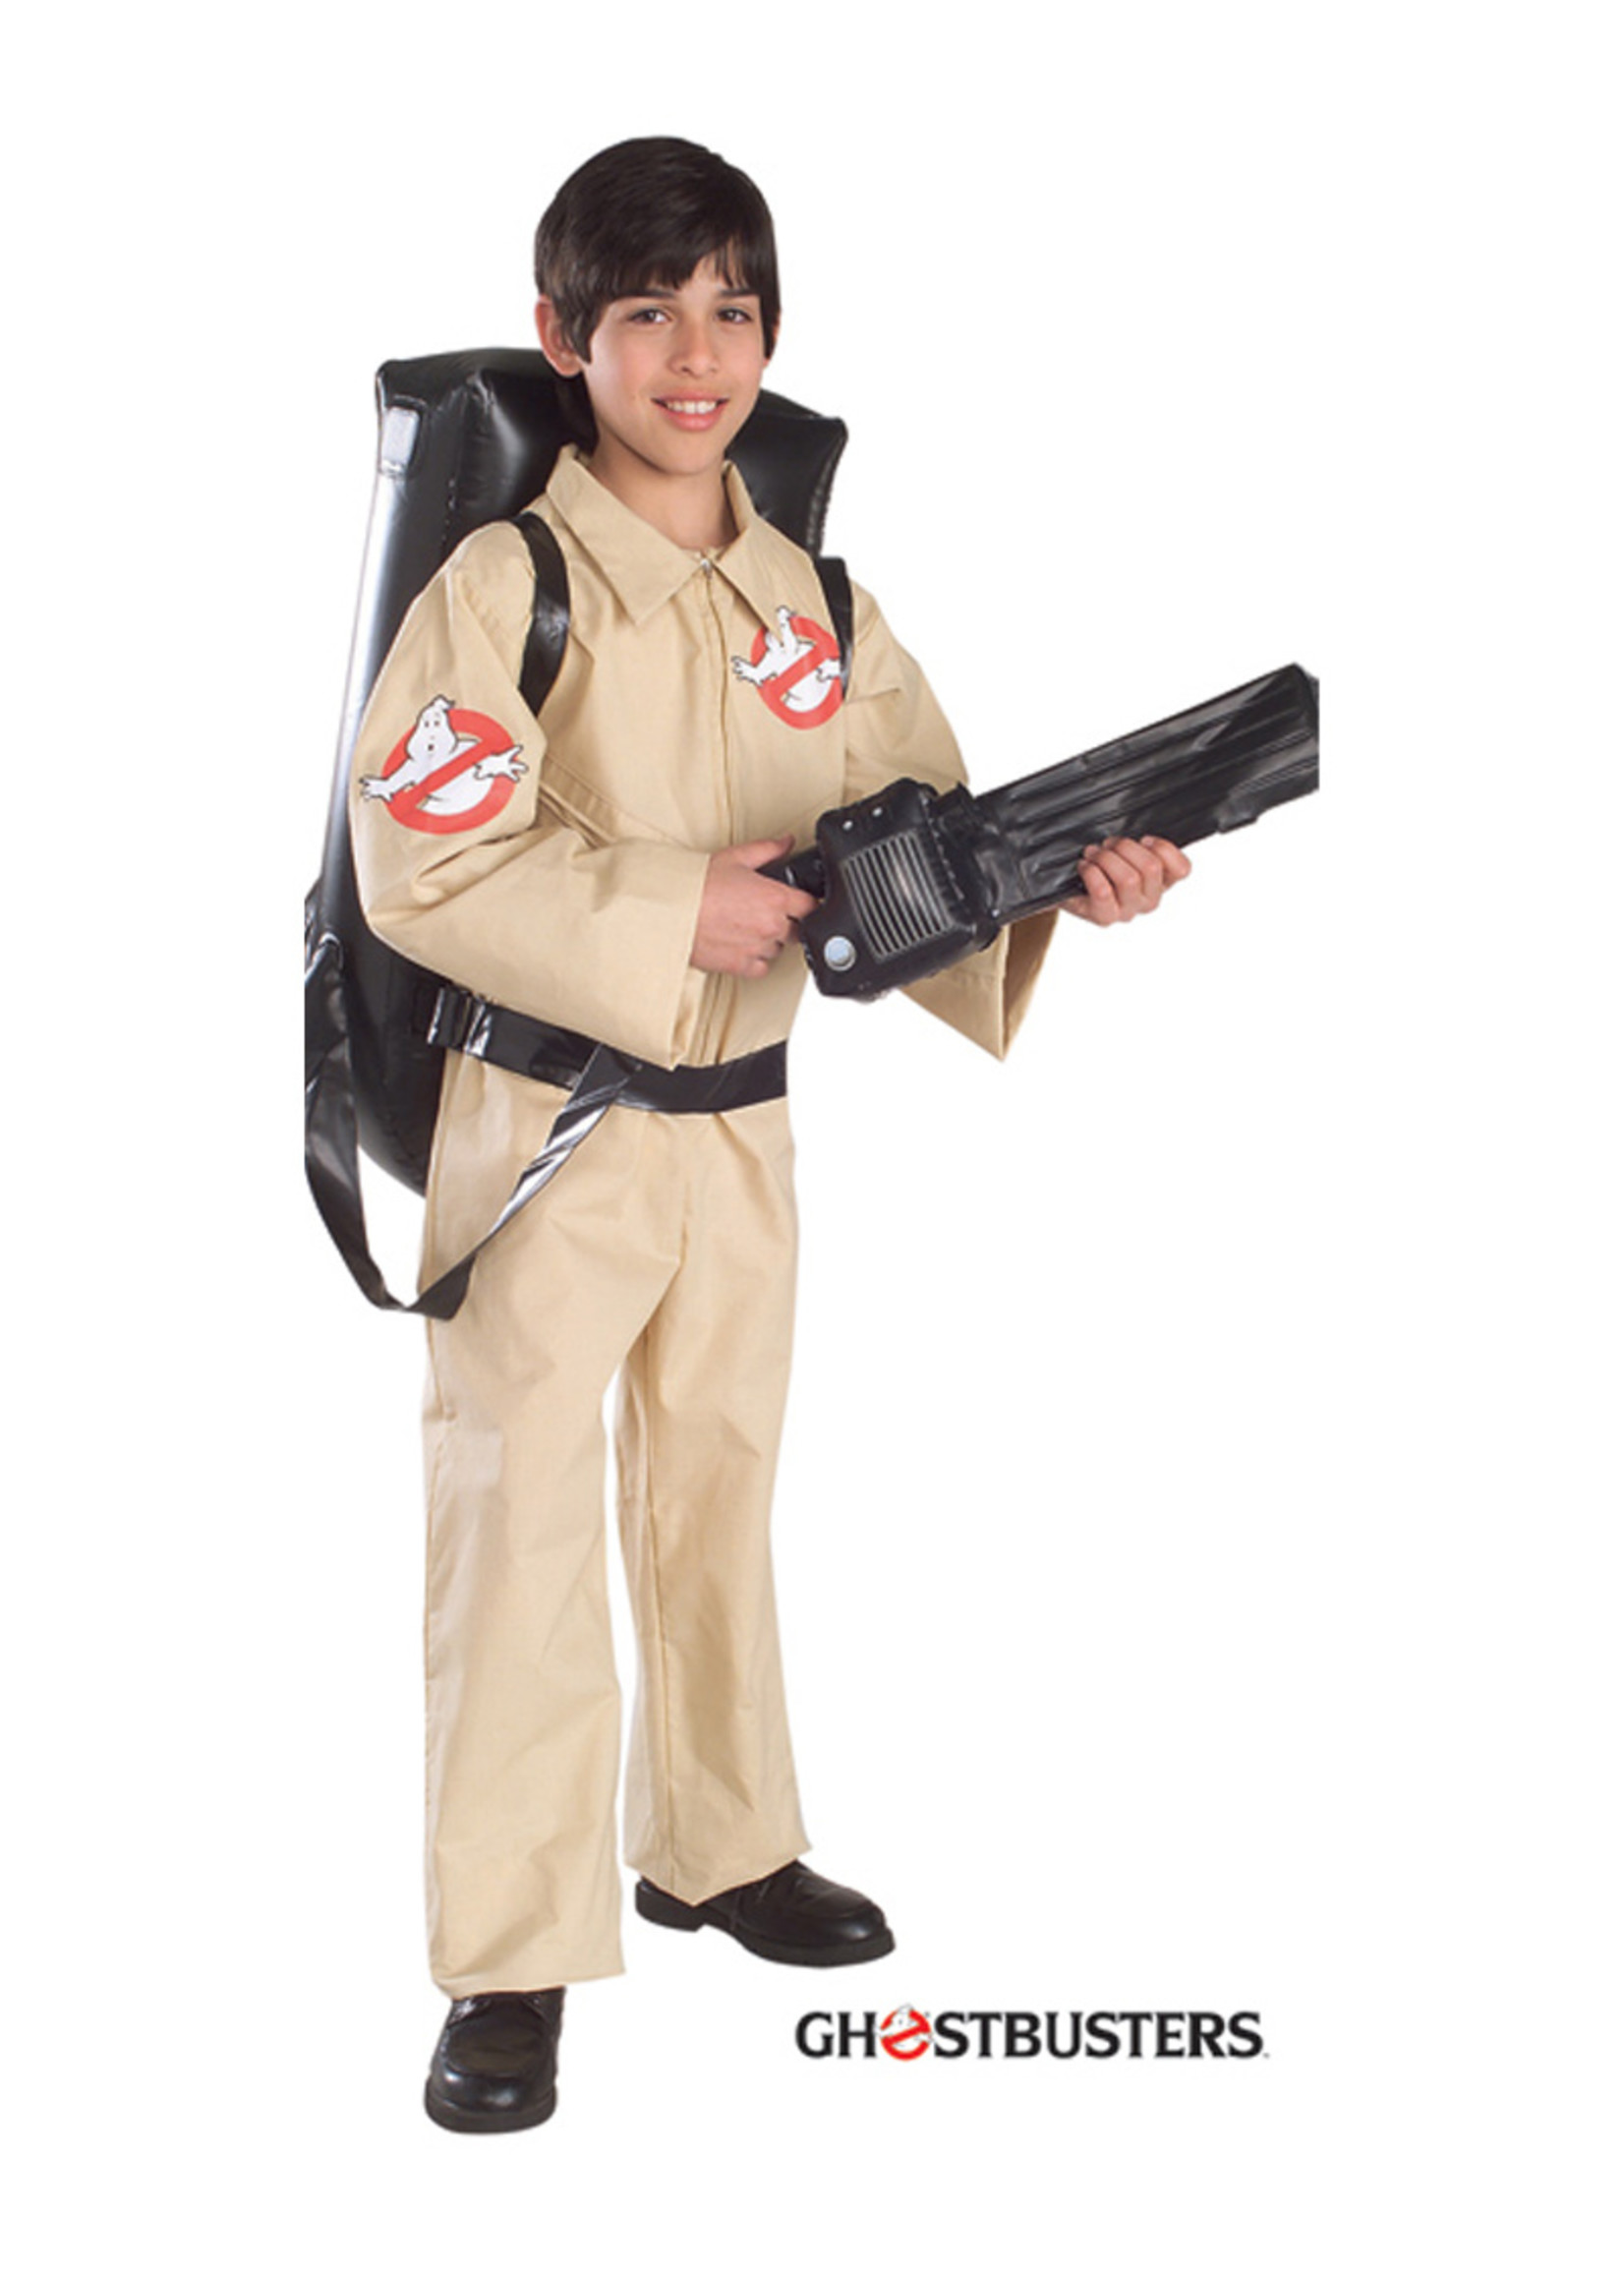 Ghostbusters Costume - Boys